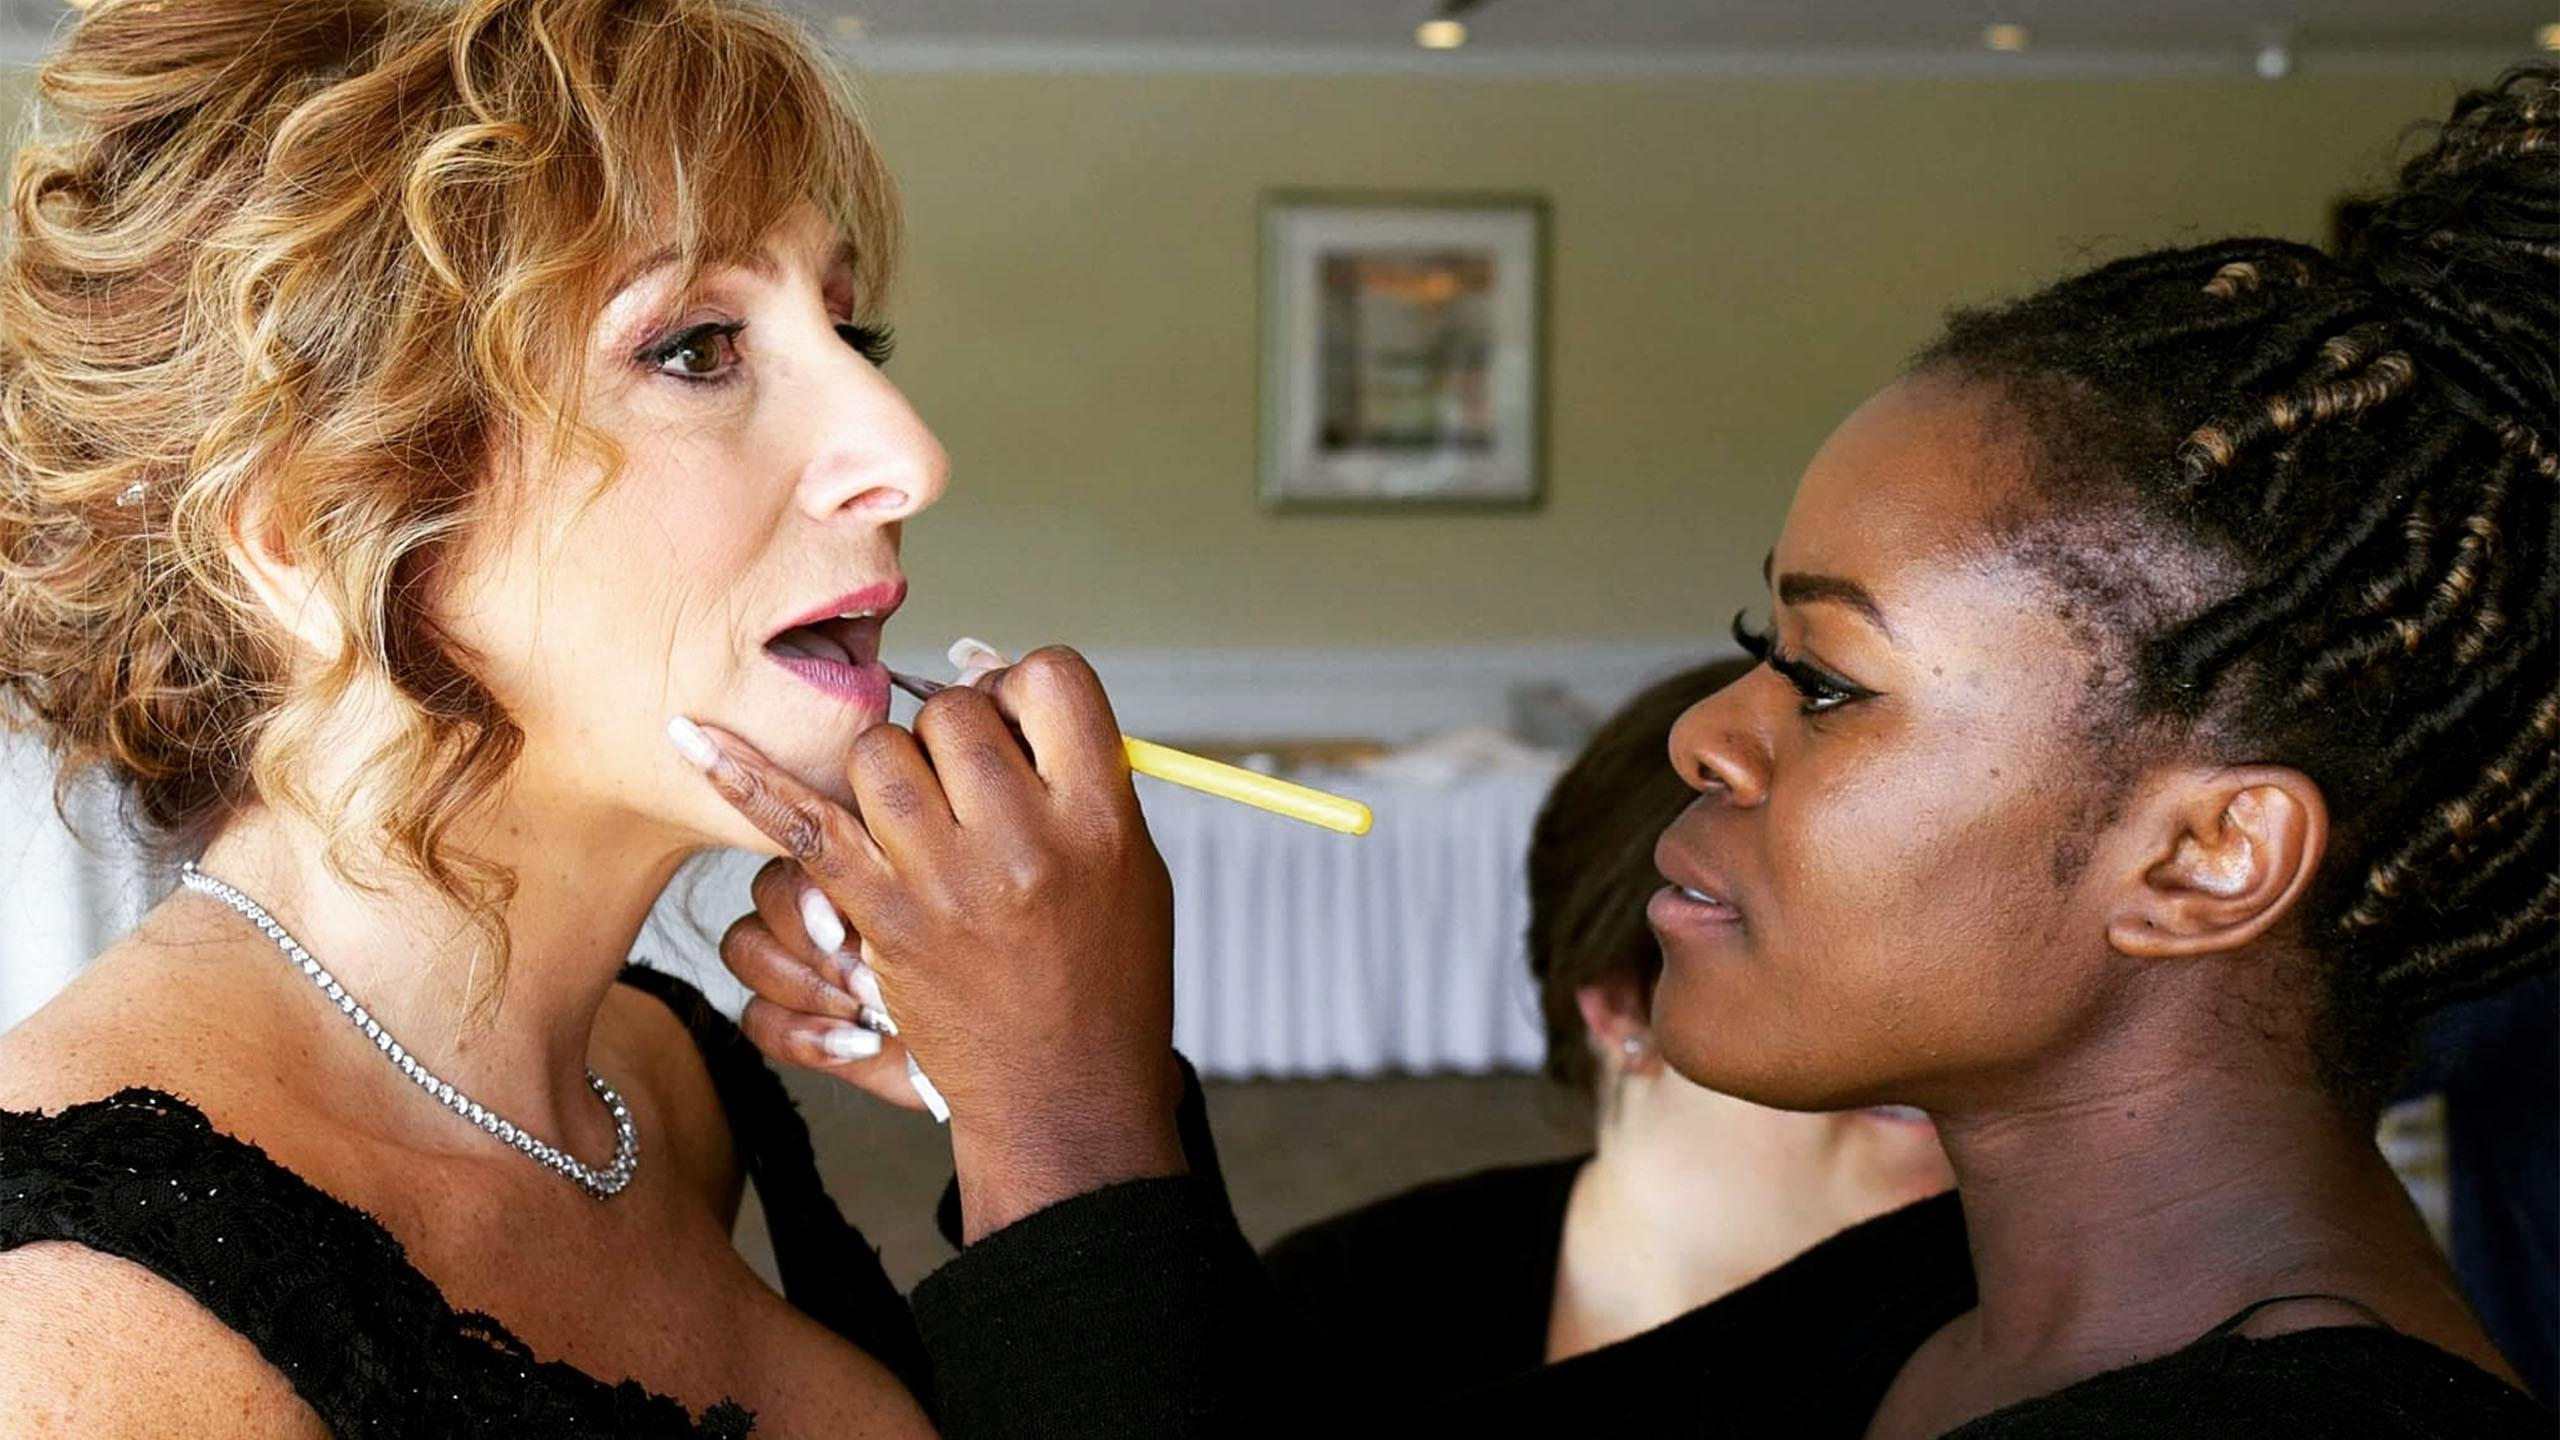 A woman applying lip makeup to another woman.